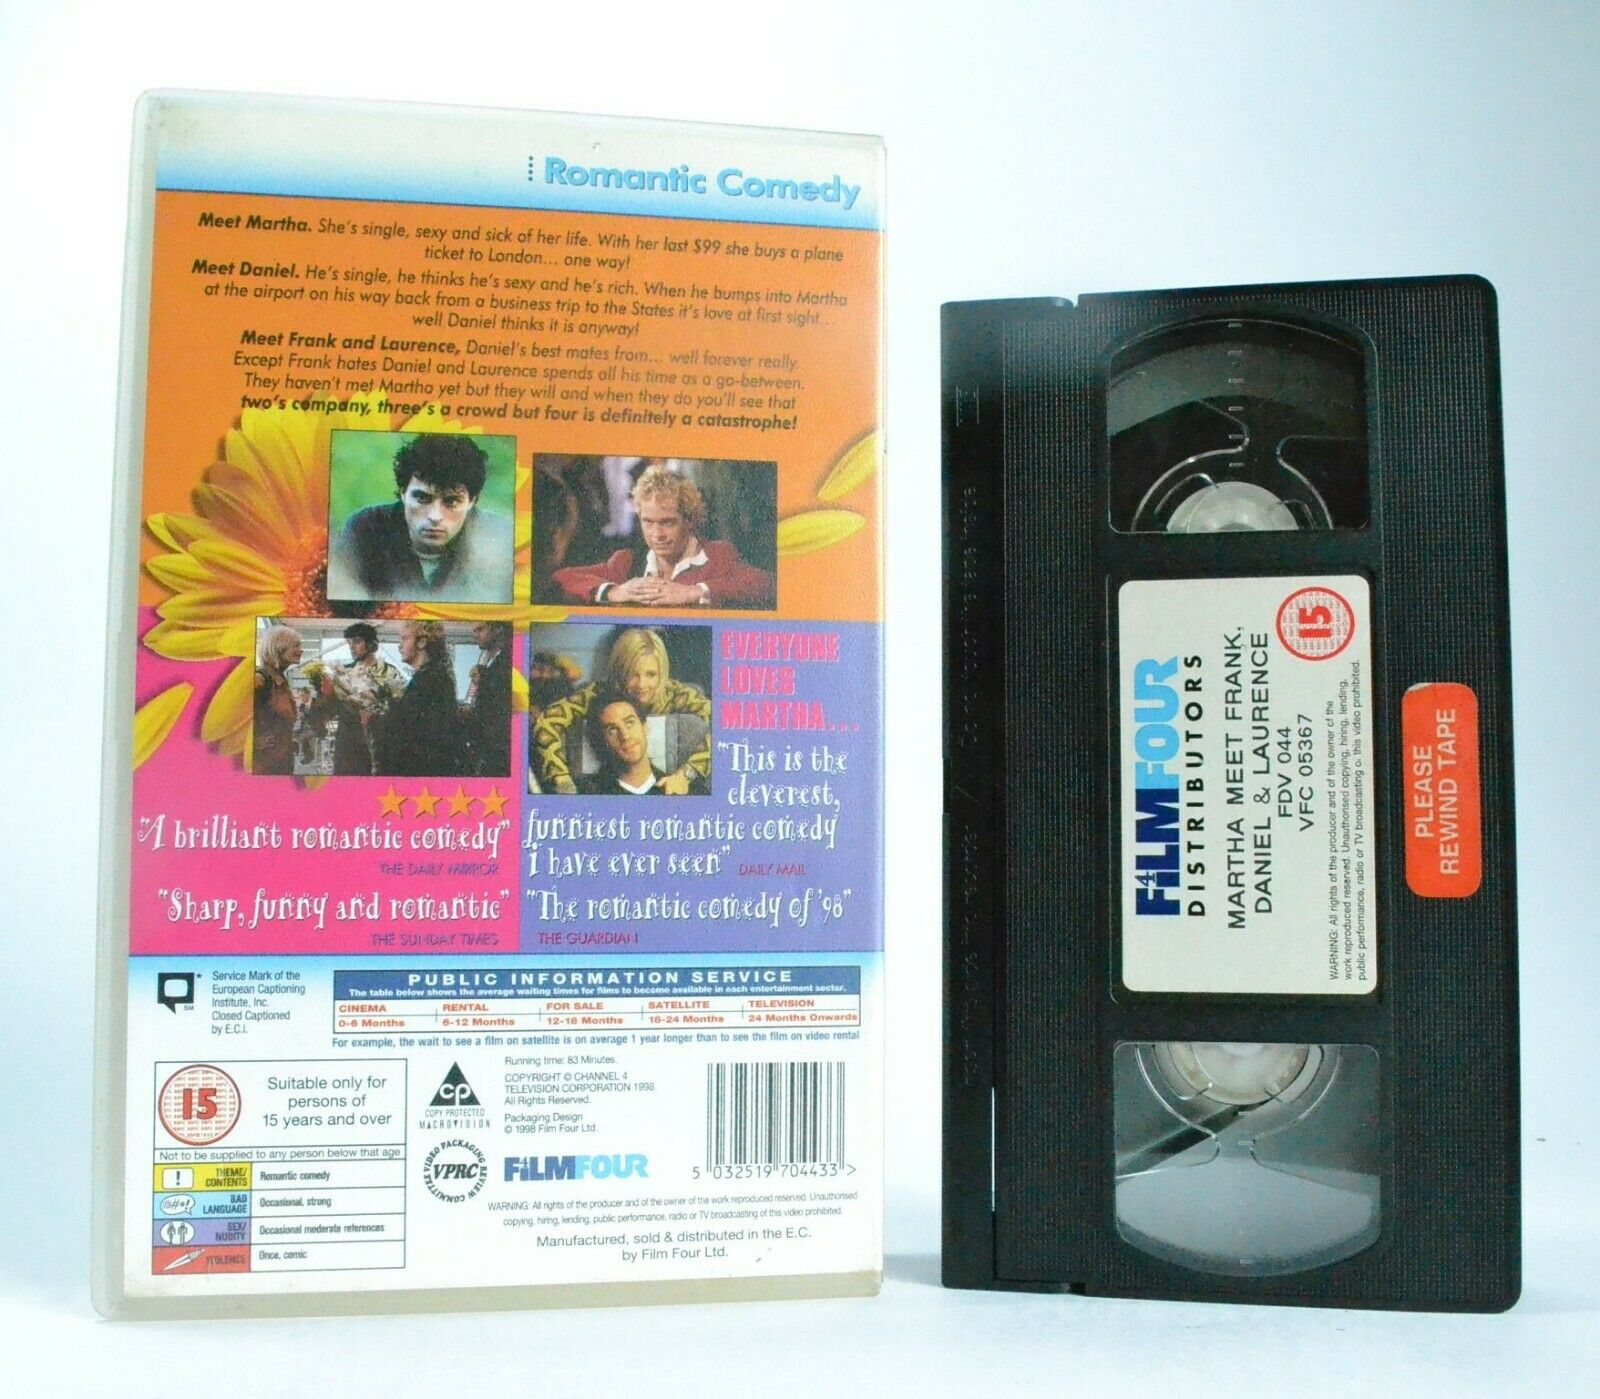 Martha Meet Frank, Daniel And Laurence: Romantic Comedy (1998) - Large Box - VHS